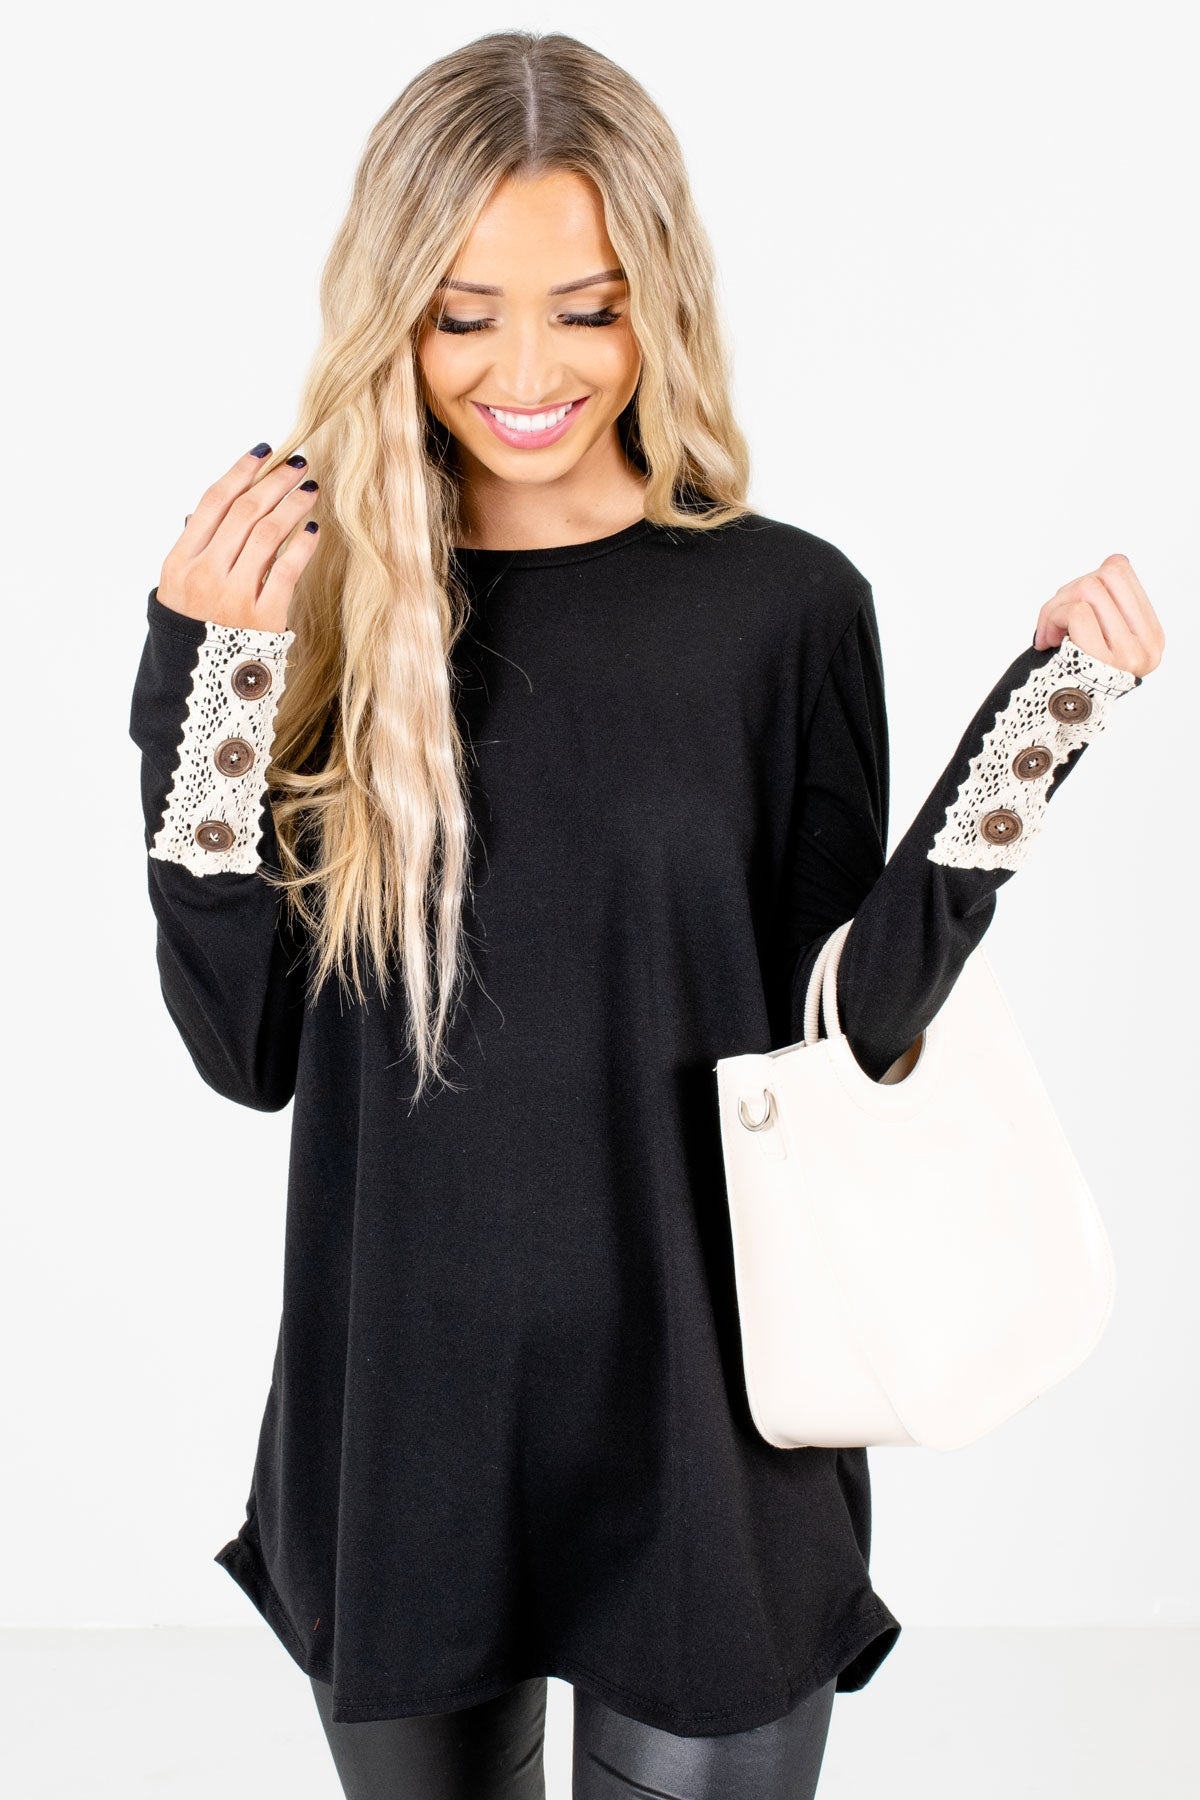 Black Lace Sleeve Accented Boutique Tops for Women